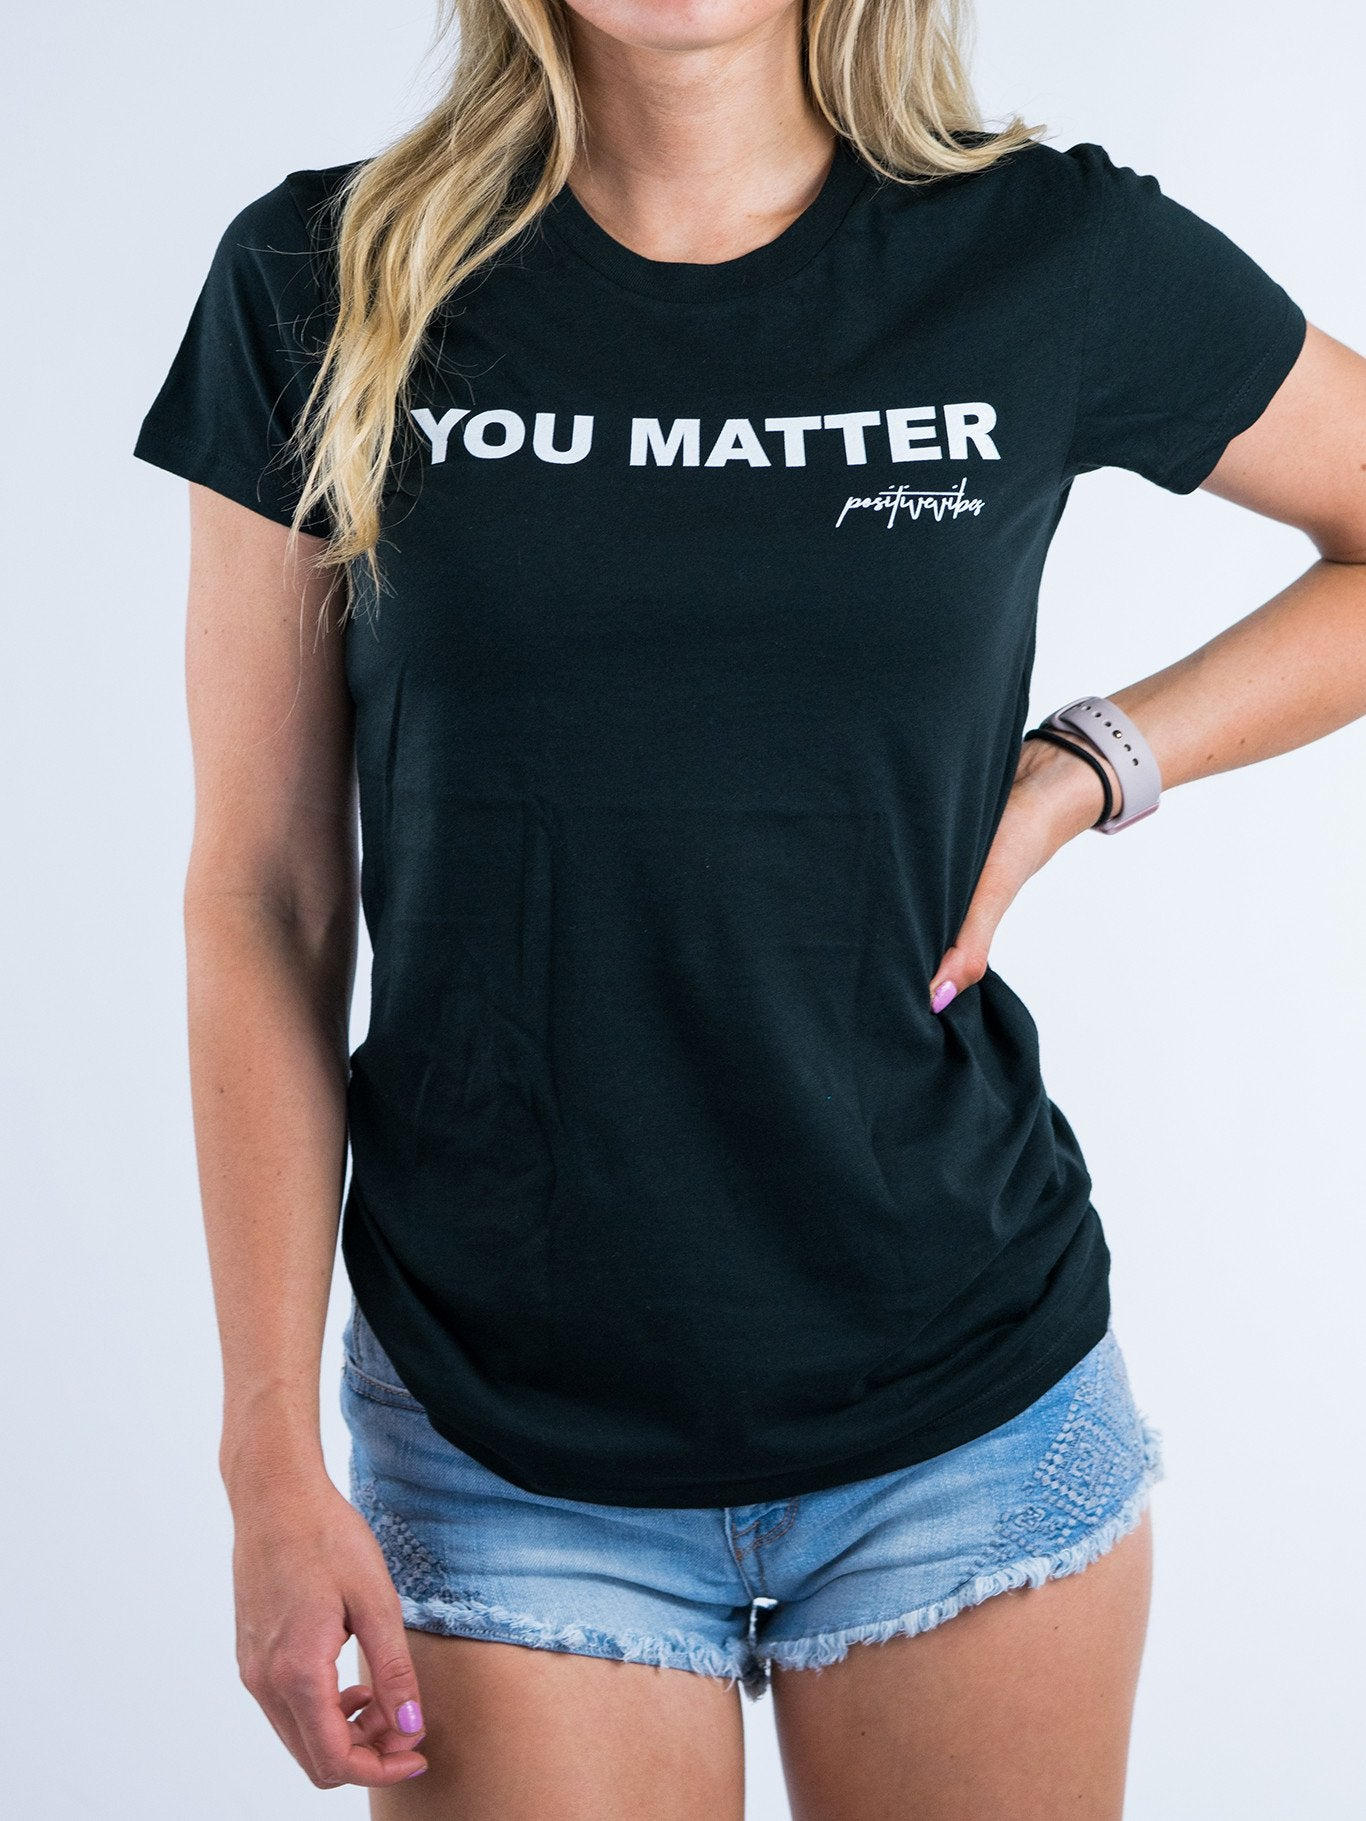 You Matter Tee - Positive Vibes Clothing